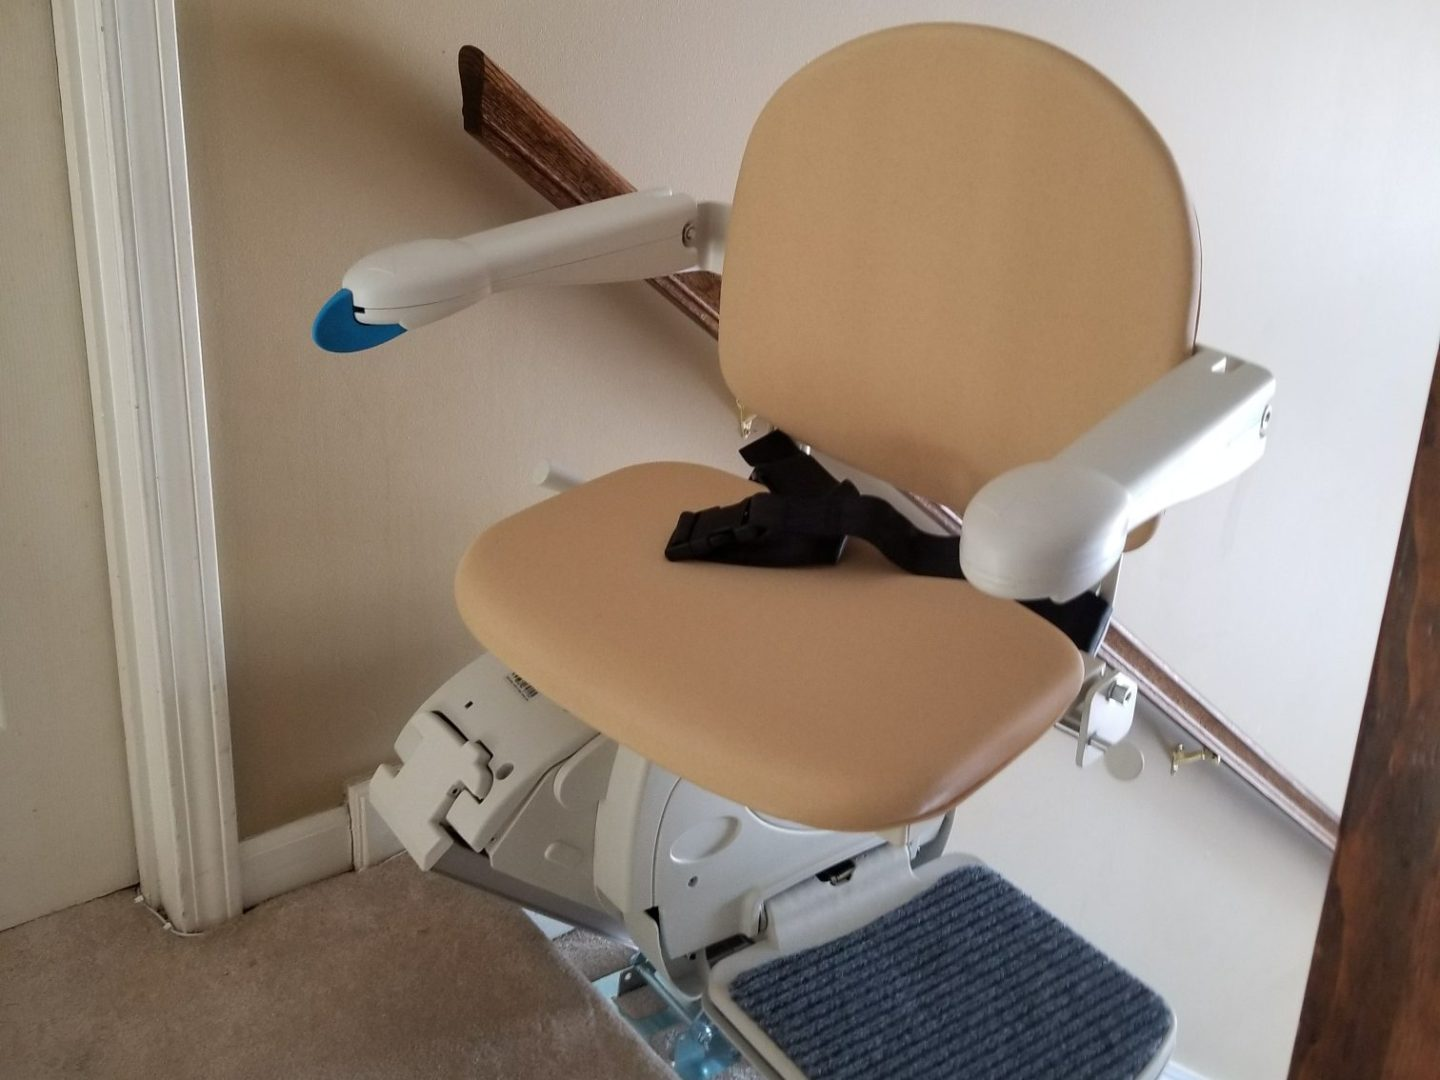 Straight Stair Lifts - Access Done Easy